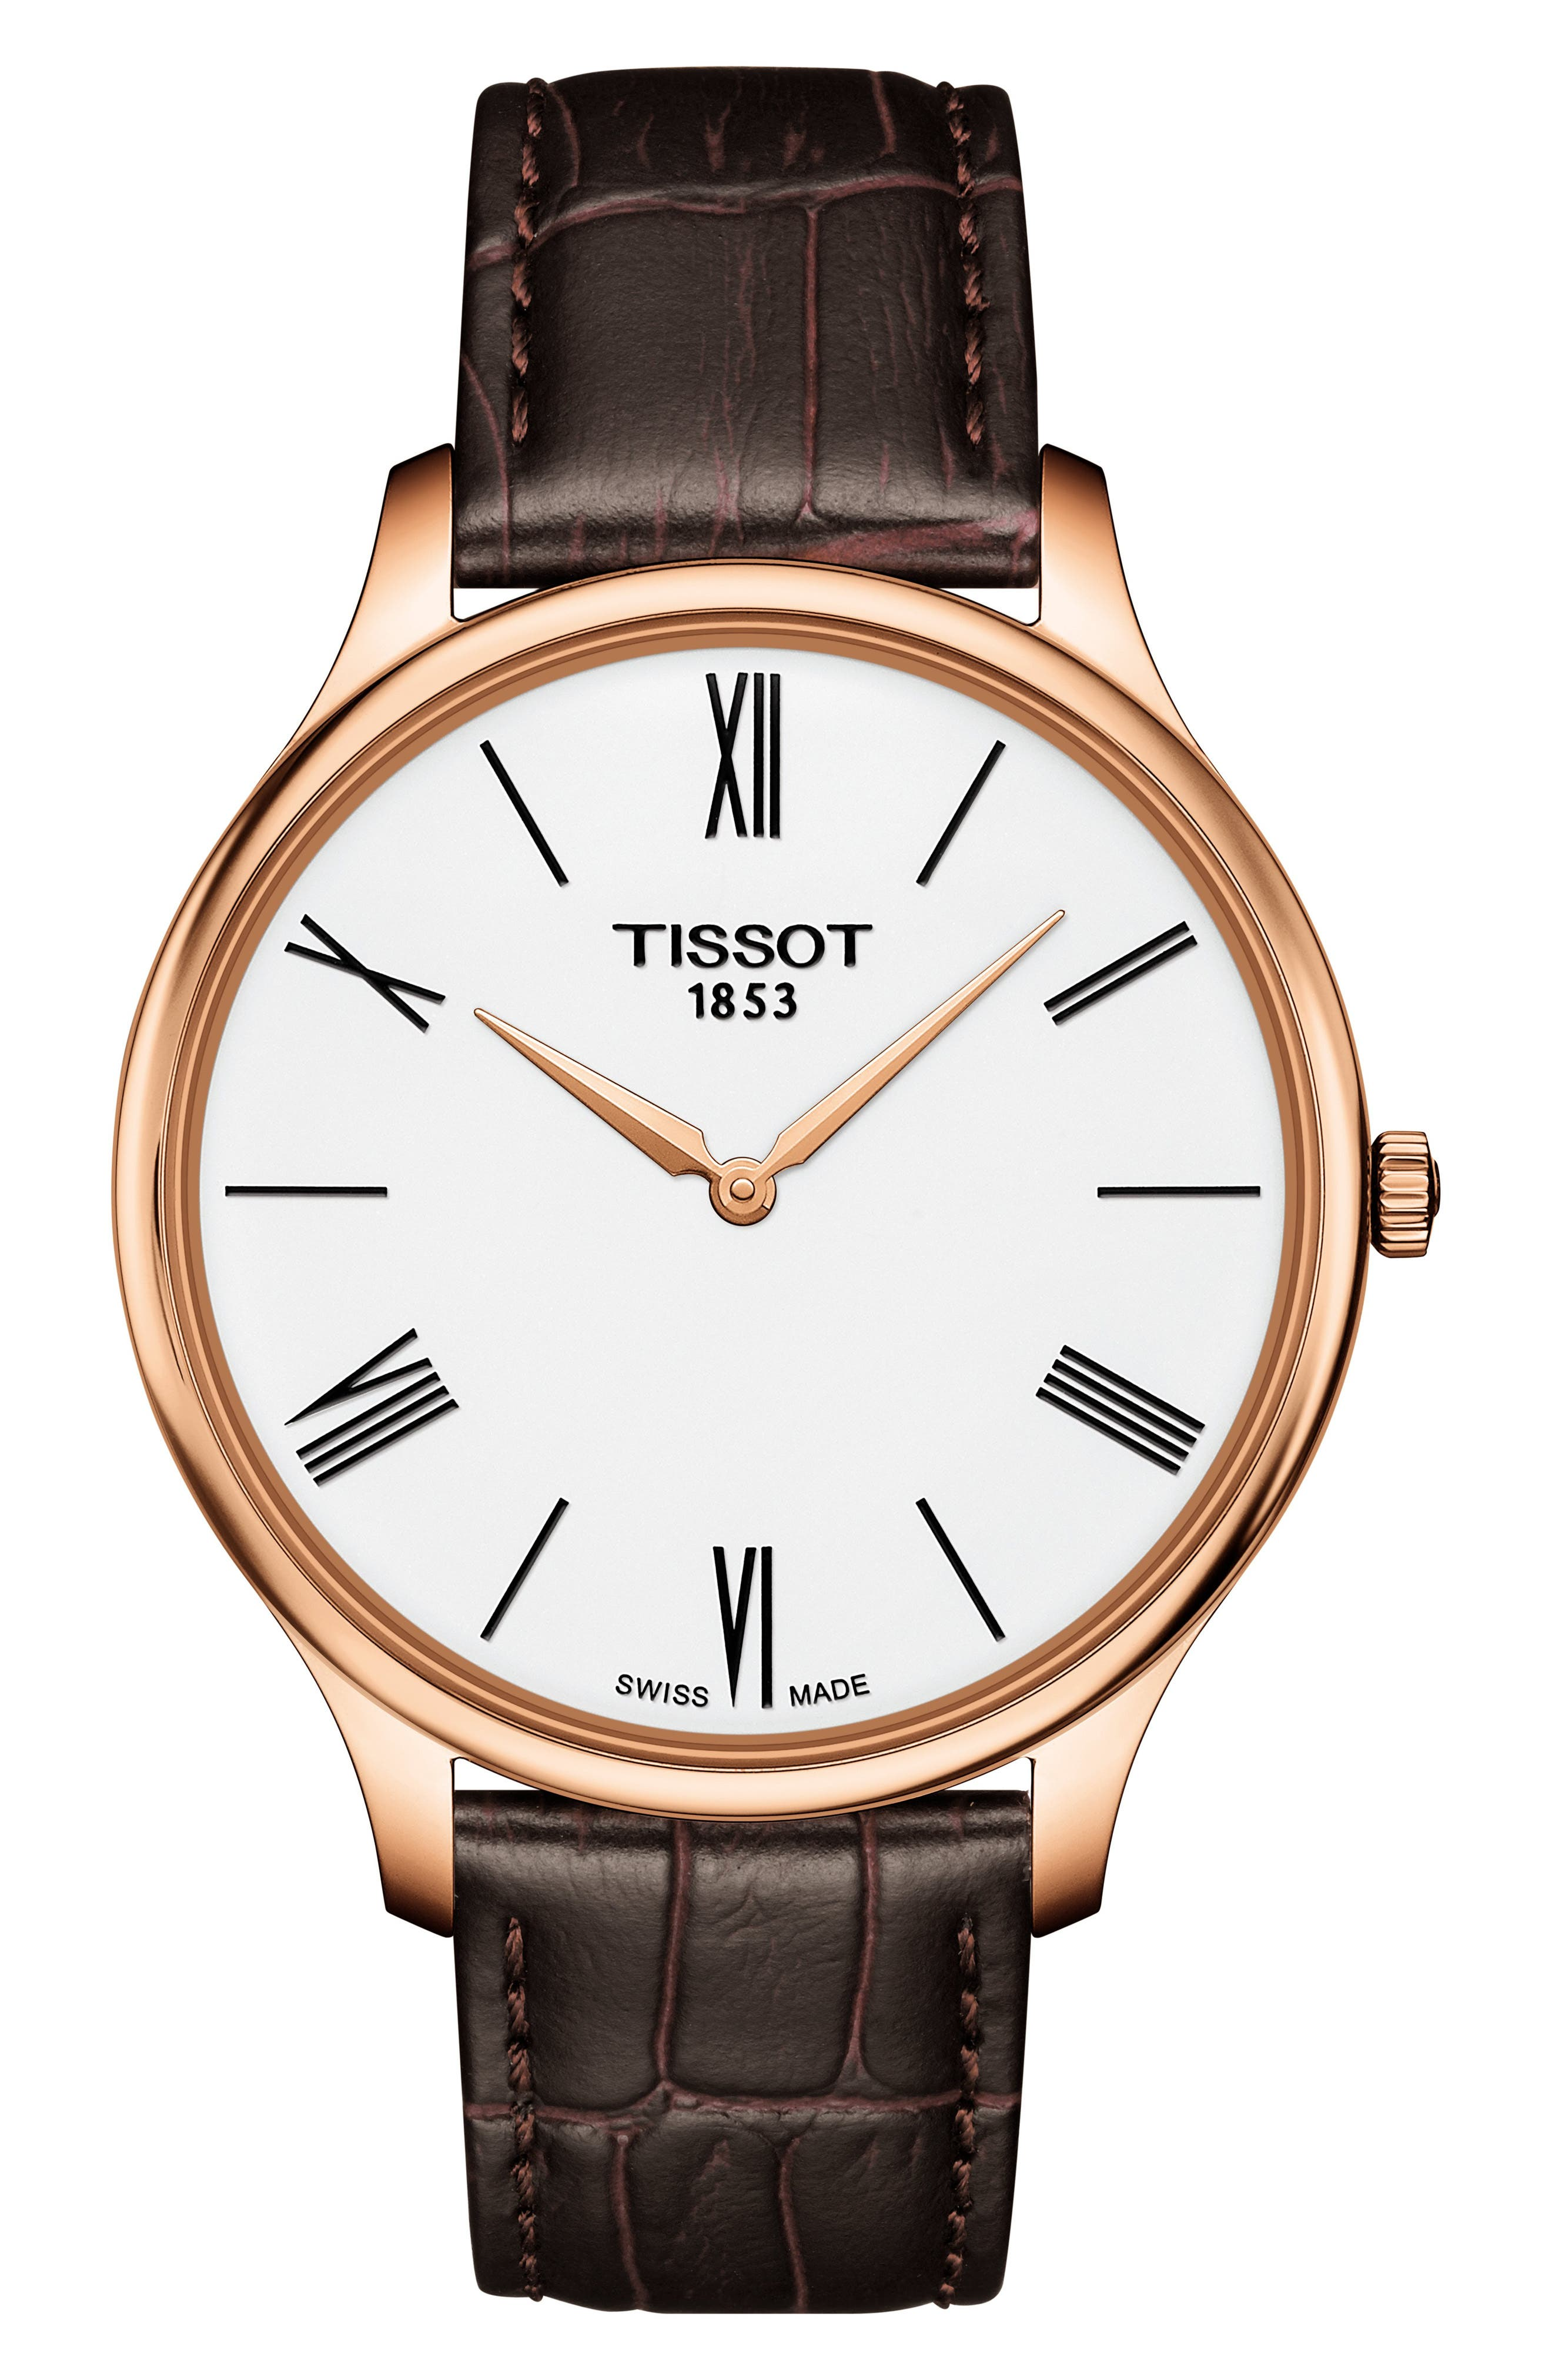 TISSOT Tradition 5.5 Round Leather Strap Watch, 39Mm in Brown/ White/ Rose Gold